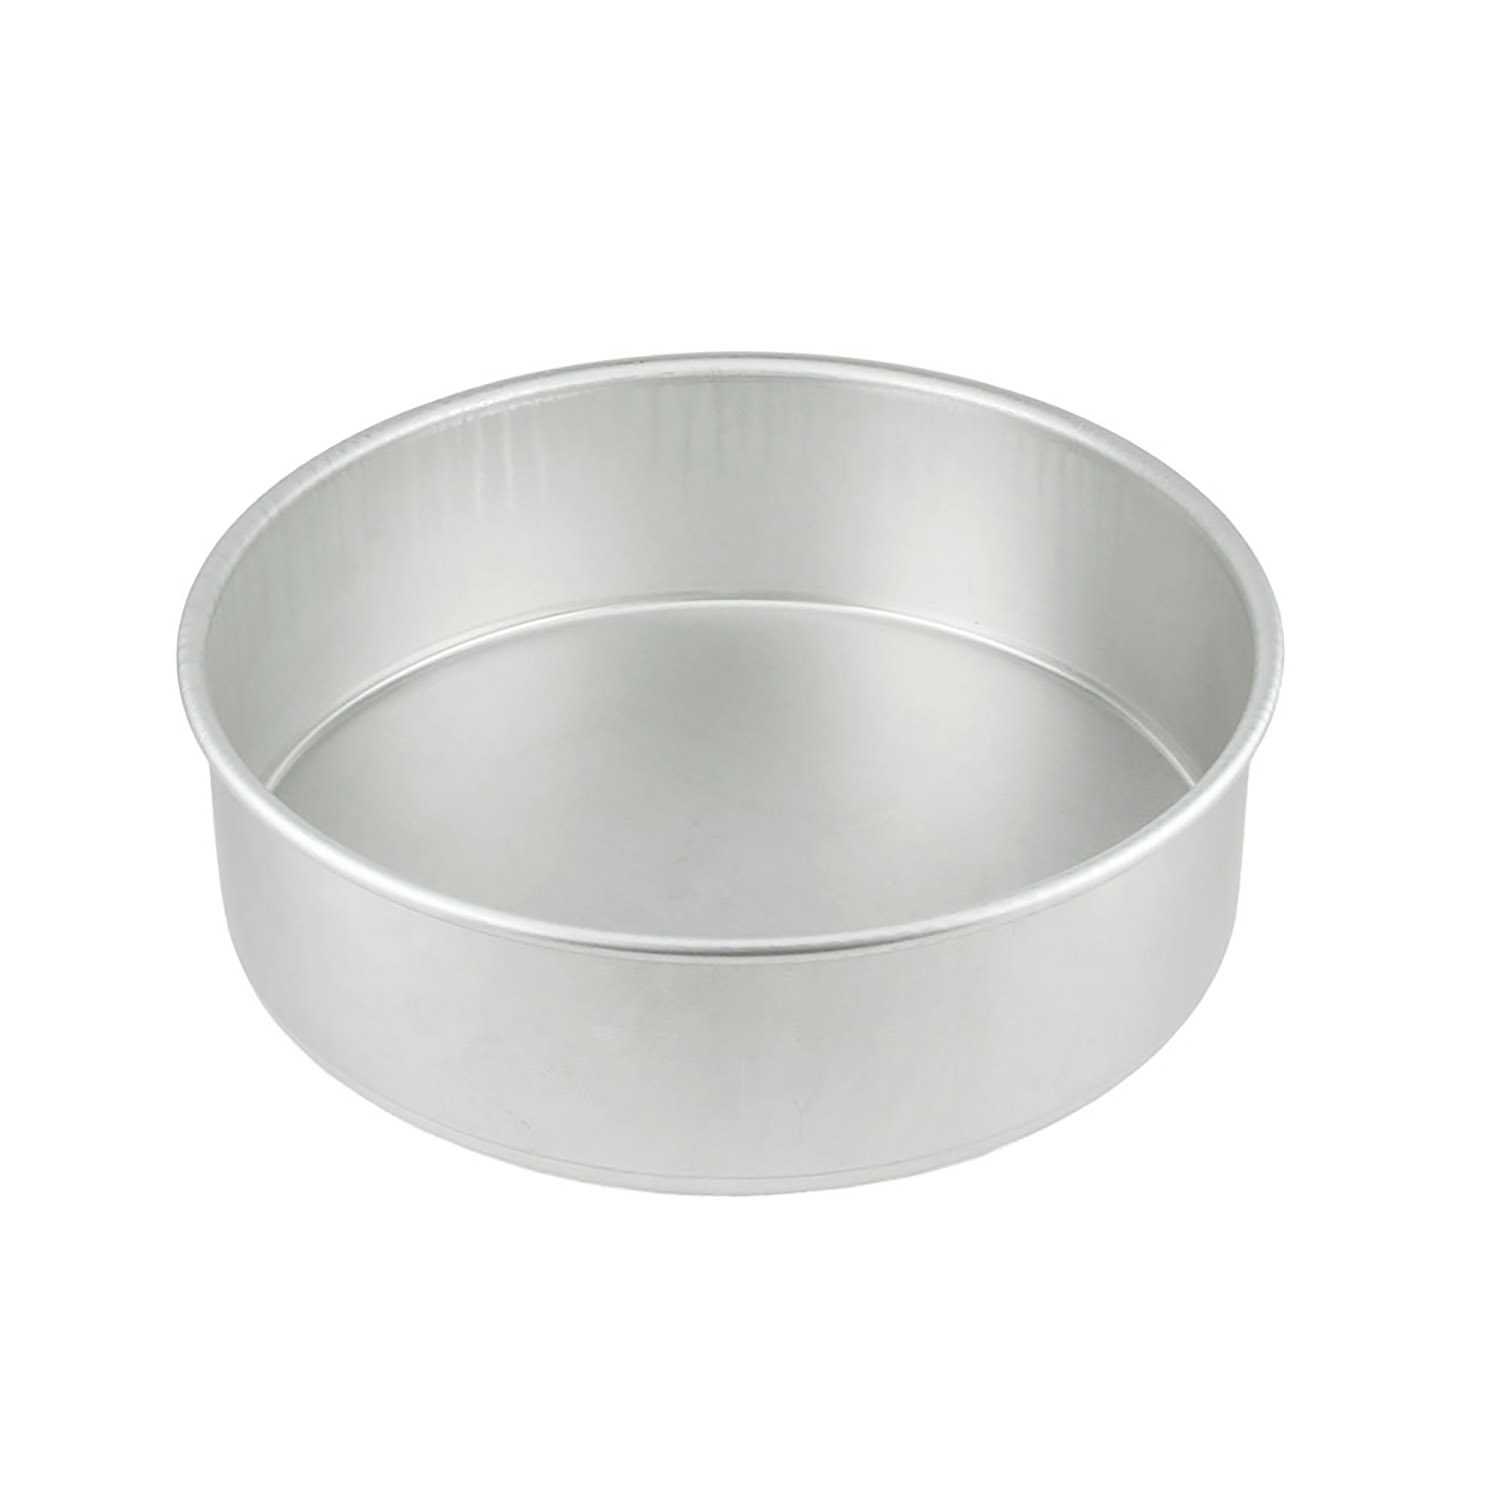 "9 x 3"" Magic Line Round Cake Pan"